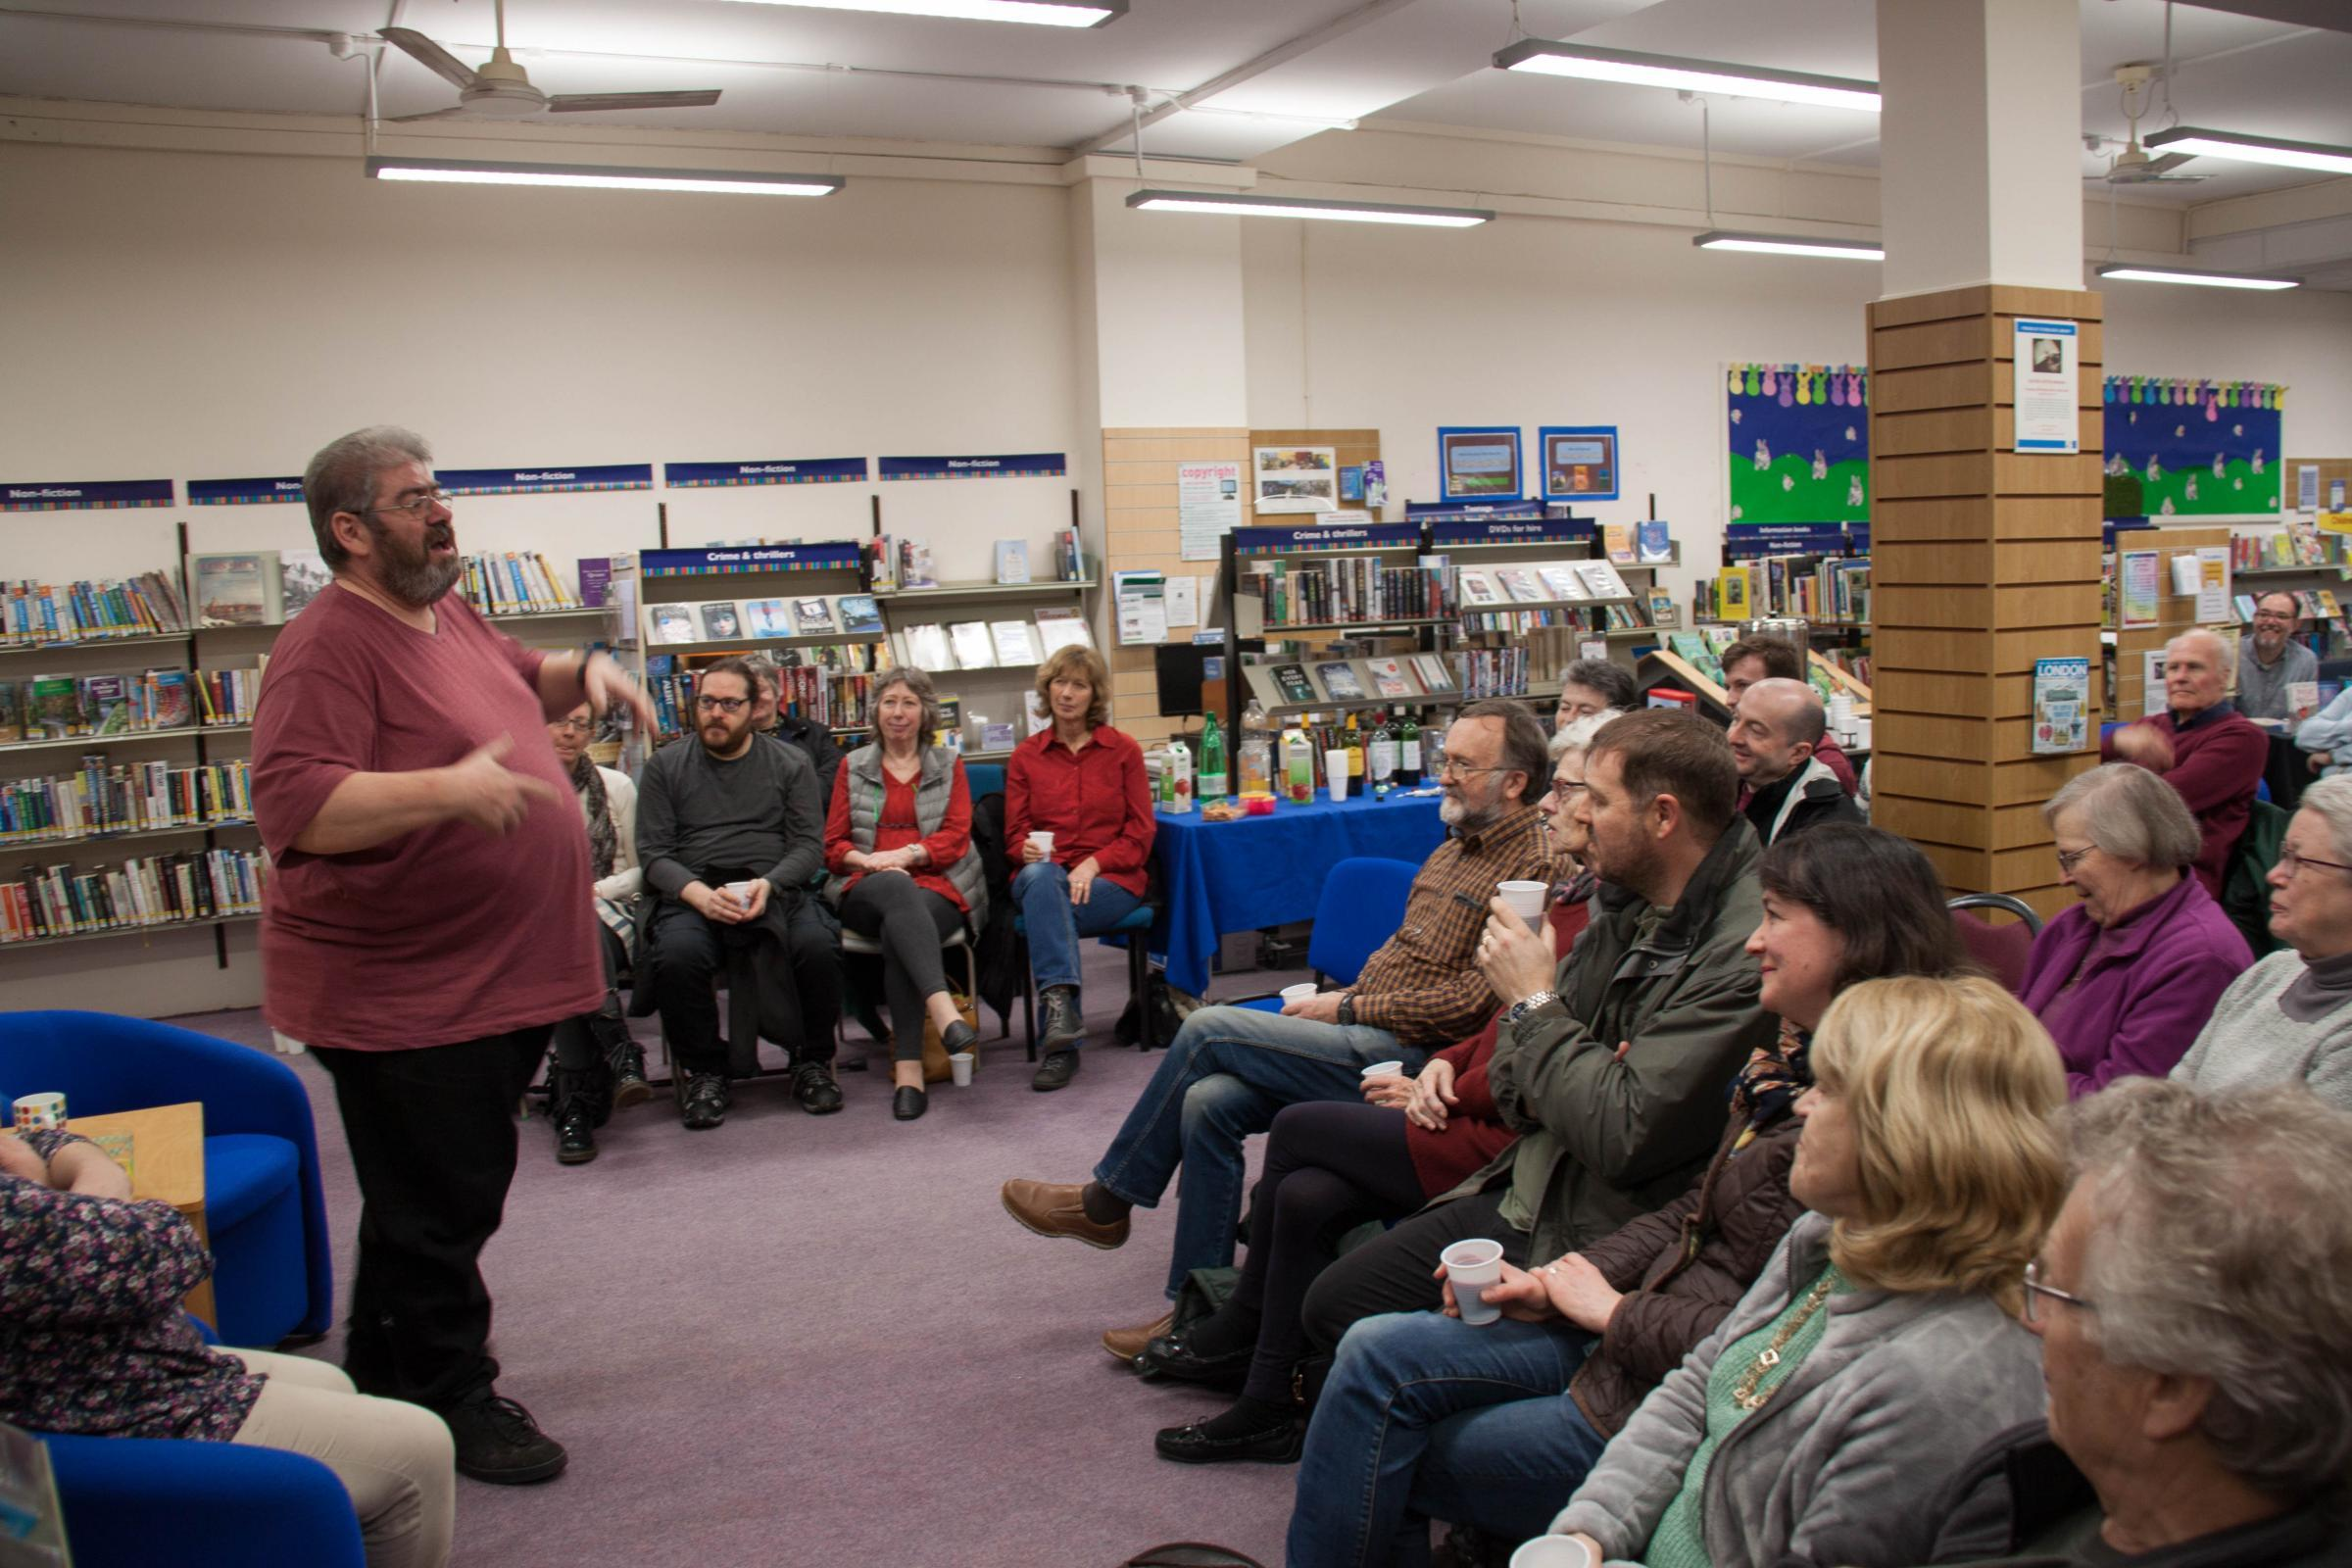 Ben Aaronovitch's Q&A session